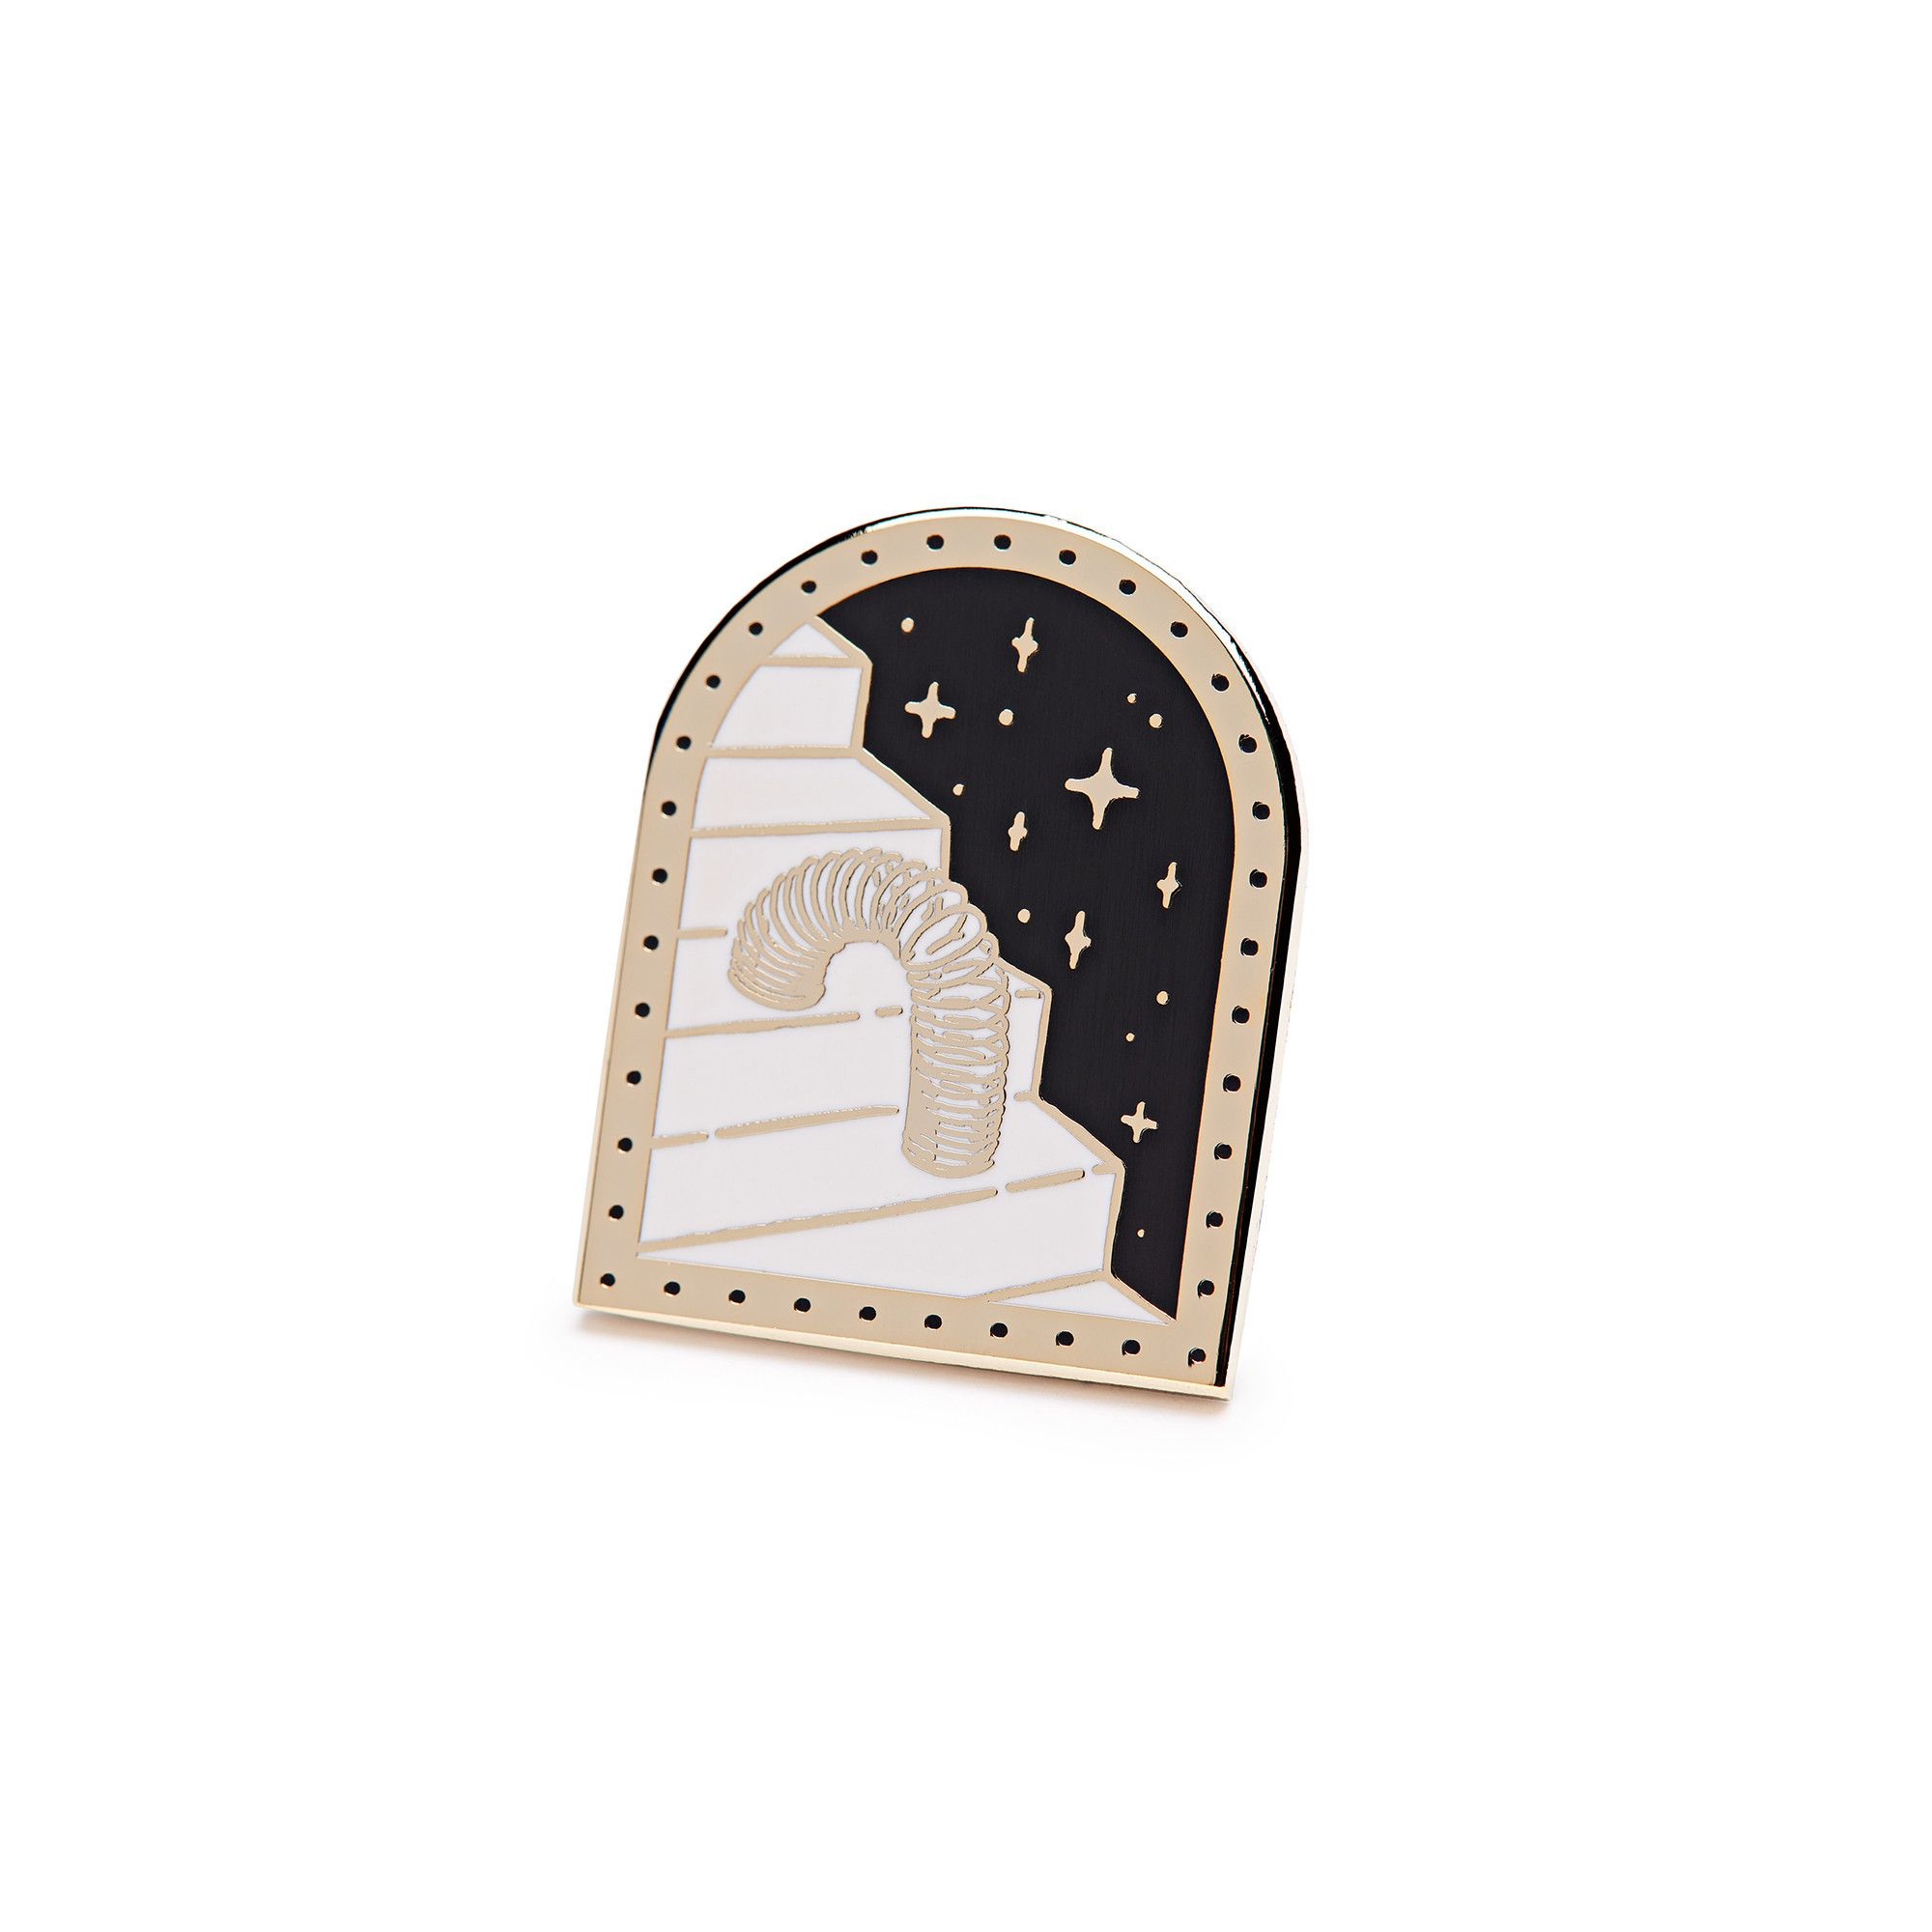 Stairway to Heaven Pin from Mean Folk